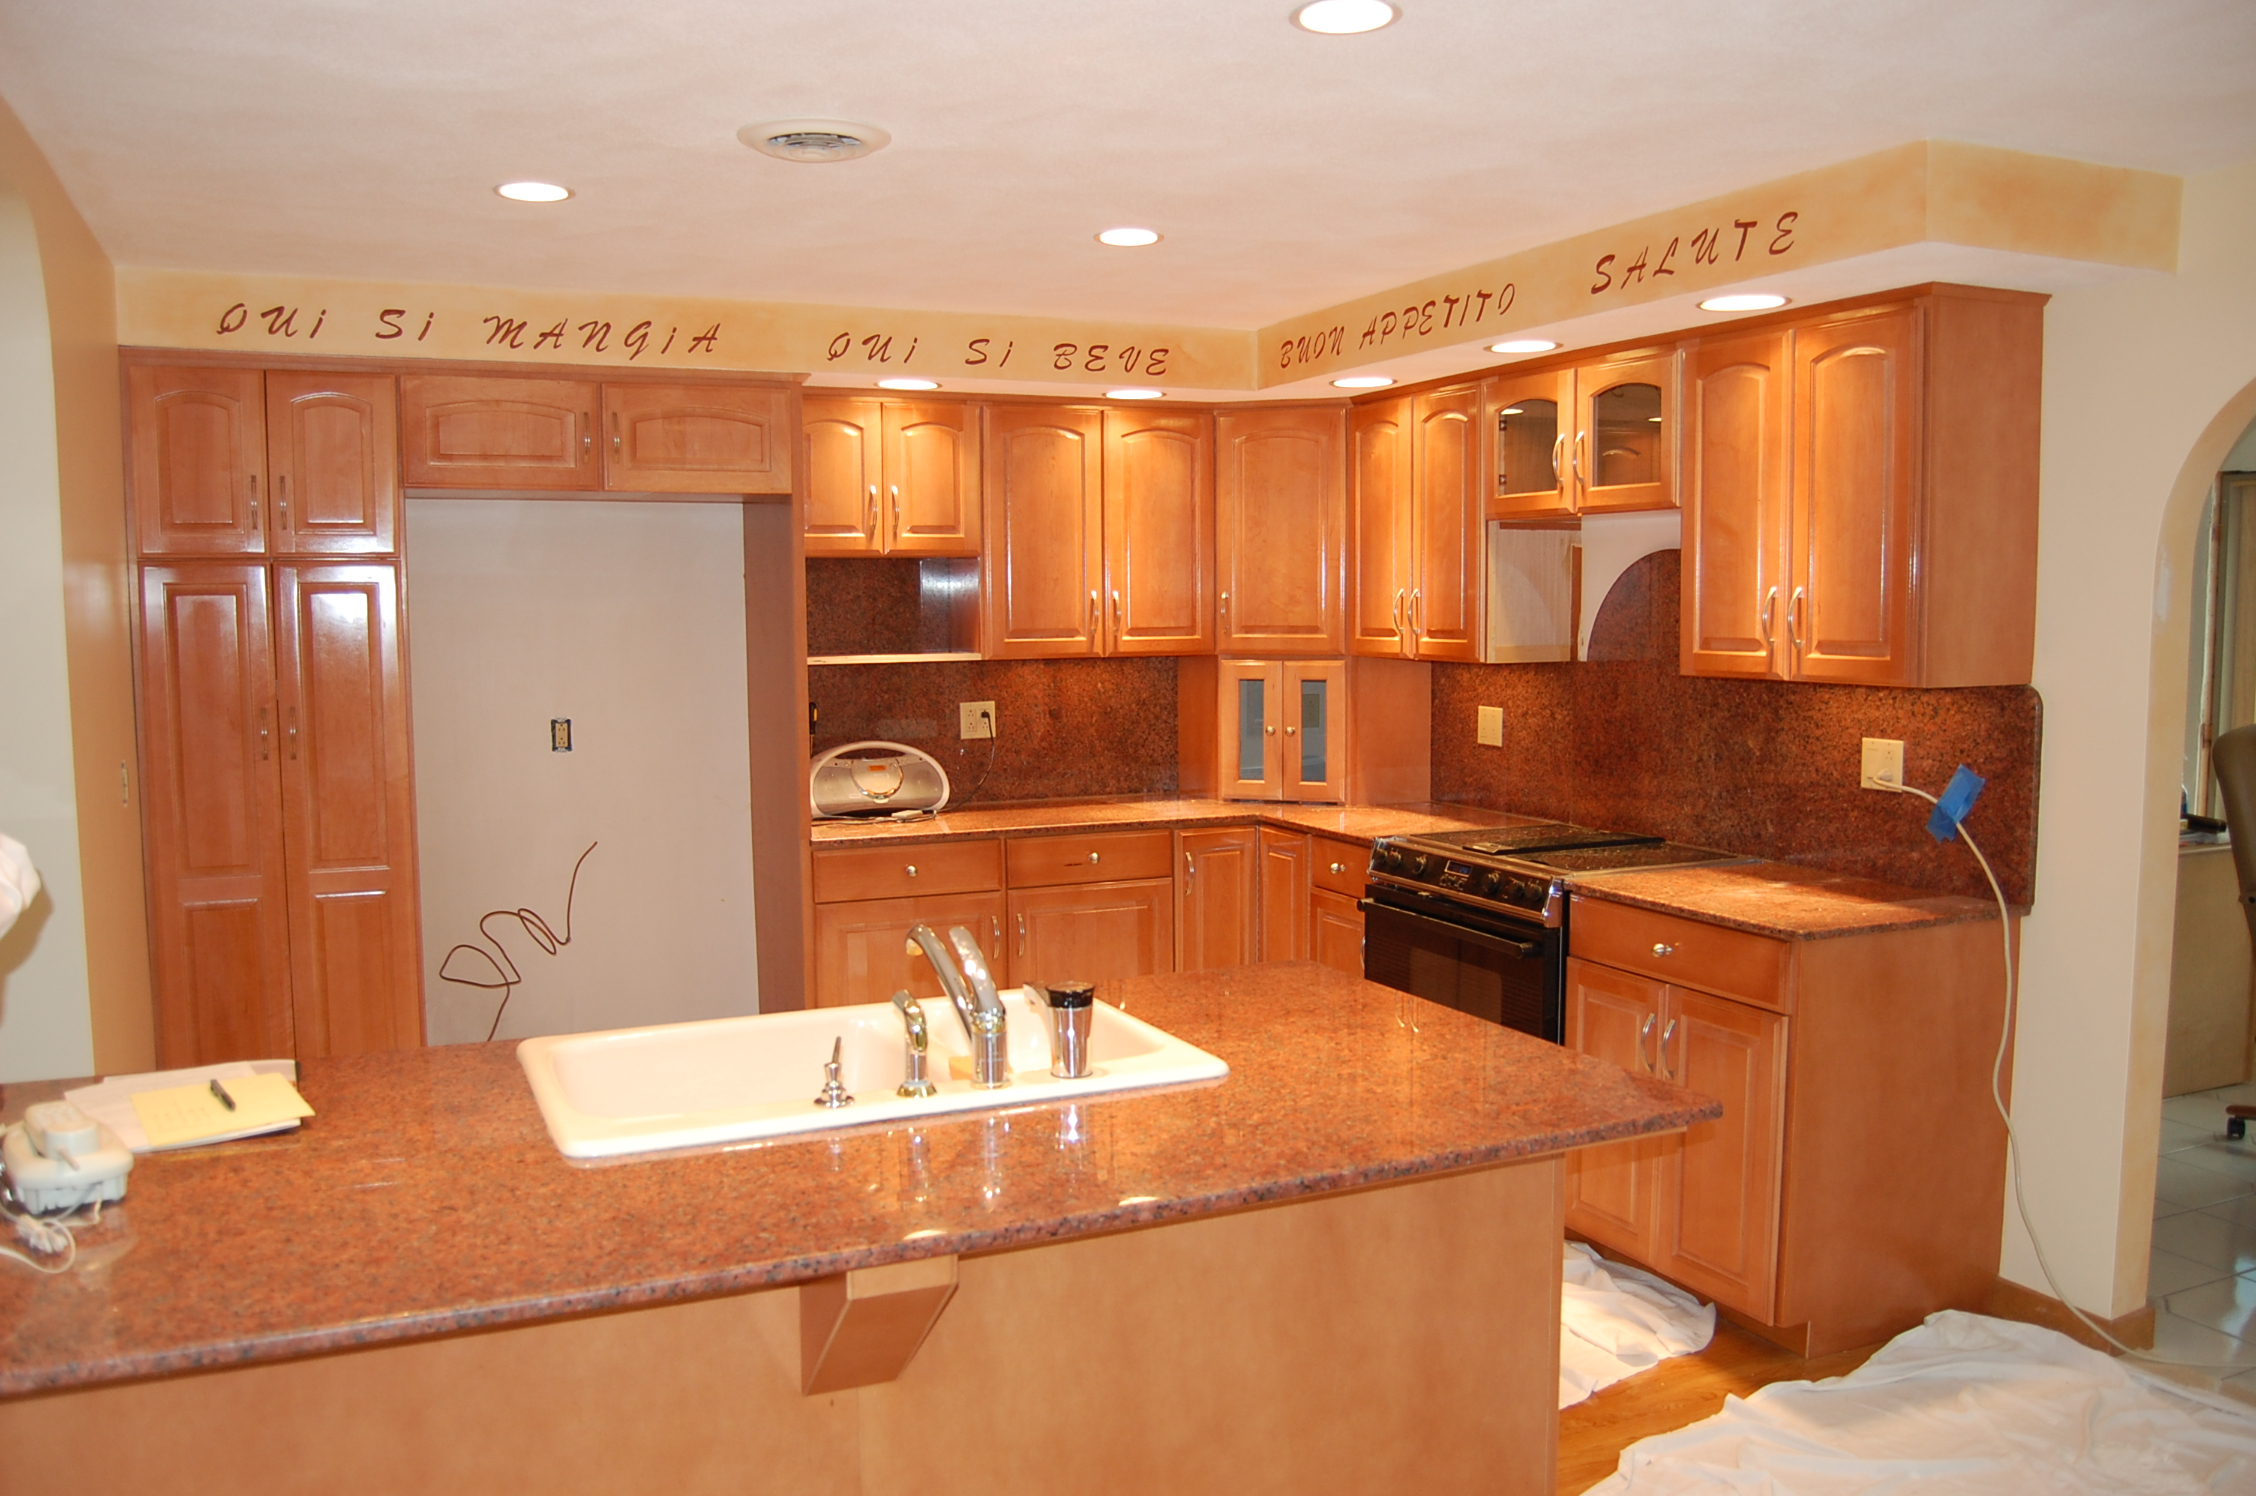 Outstanding Refacing Kitchen Cabinets Before After 2256 x 1496 · 1401 kB · jpeg